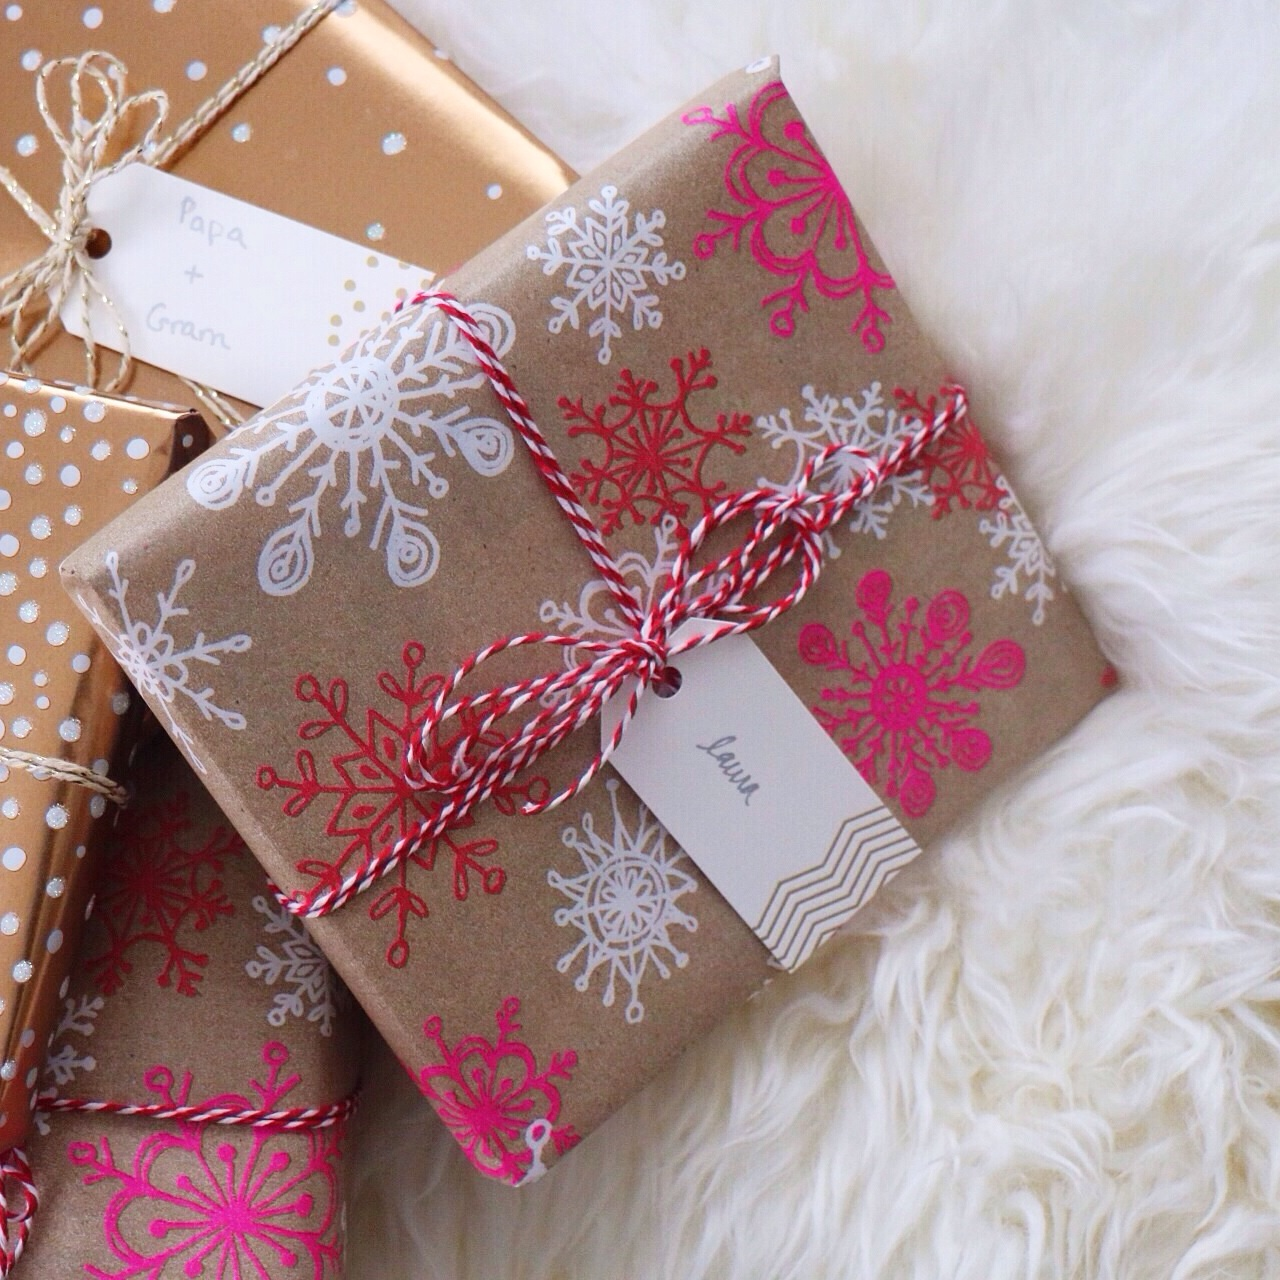 Recent wrapping adventures